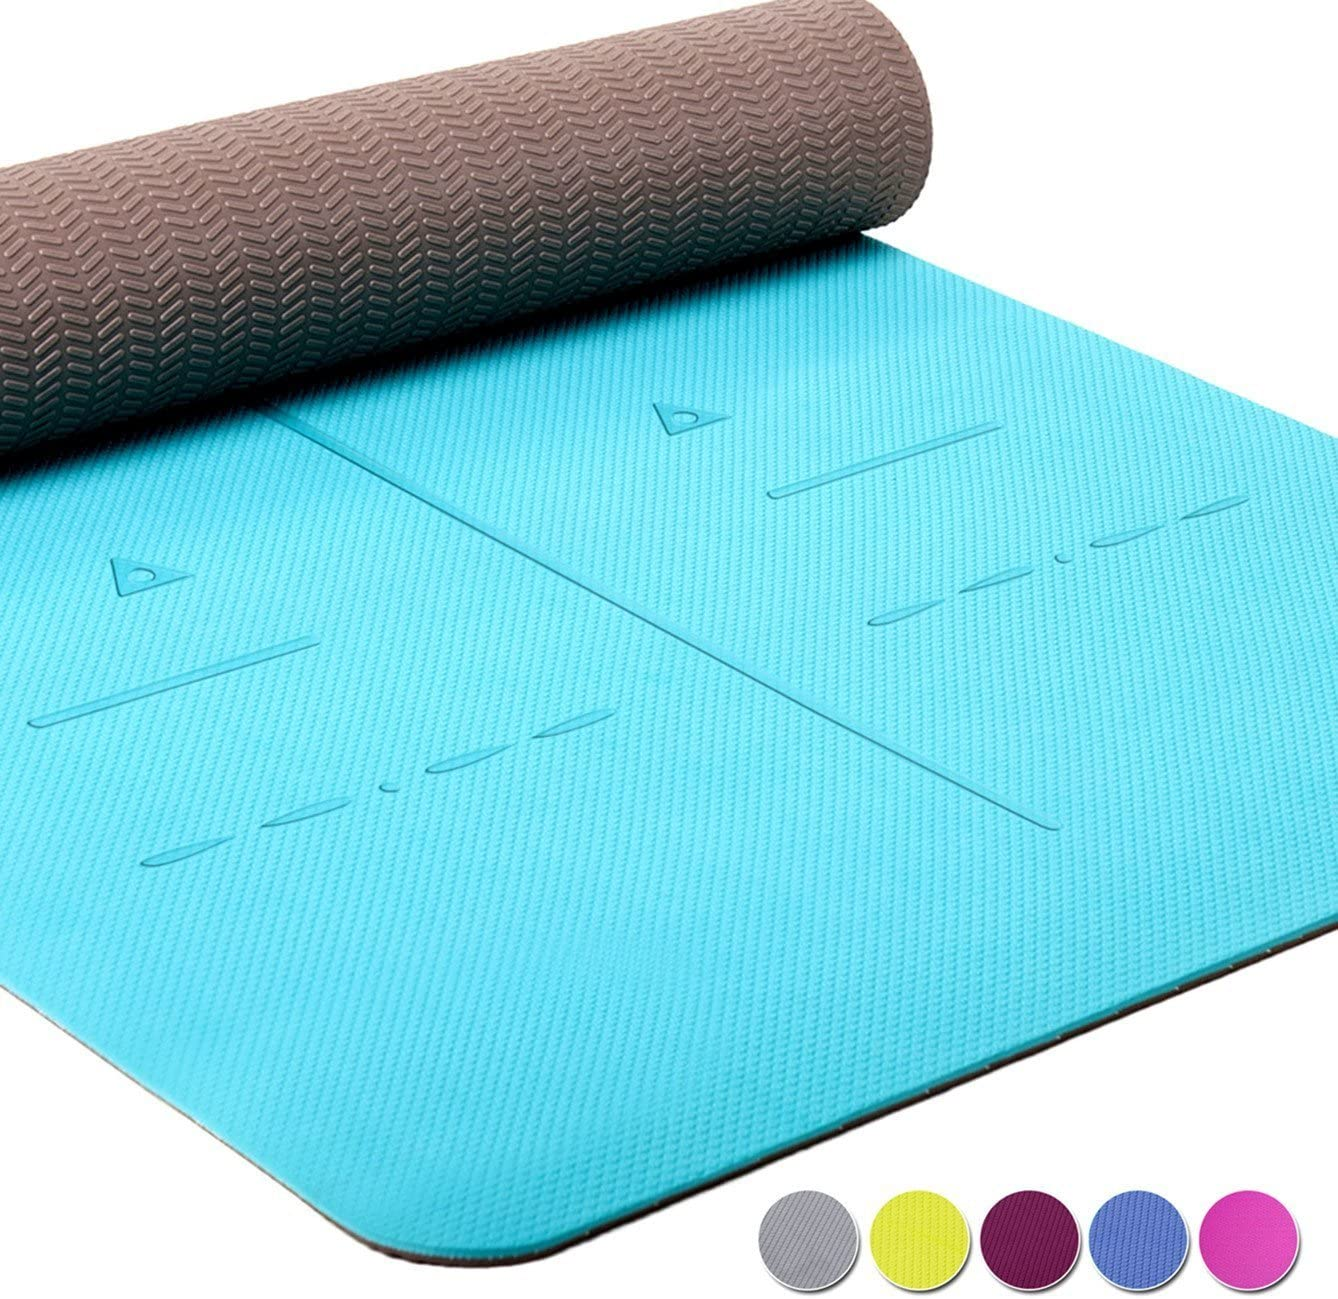 Heathyoga Eco-Friendly Yoga Mat